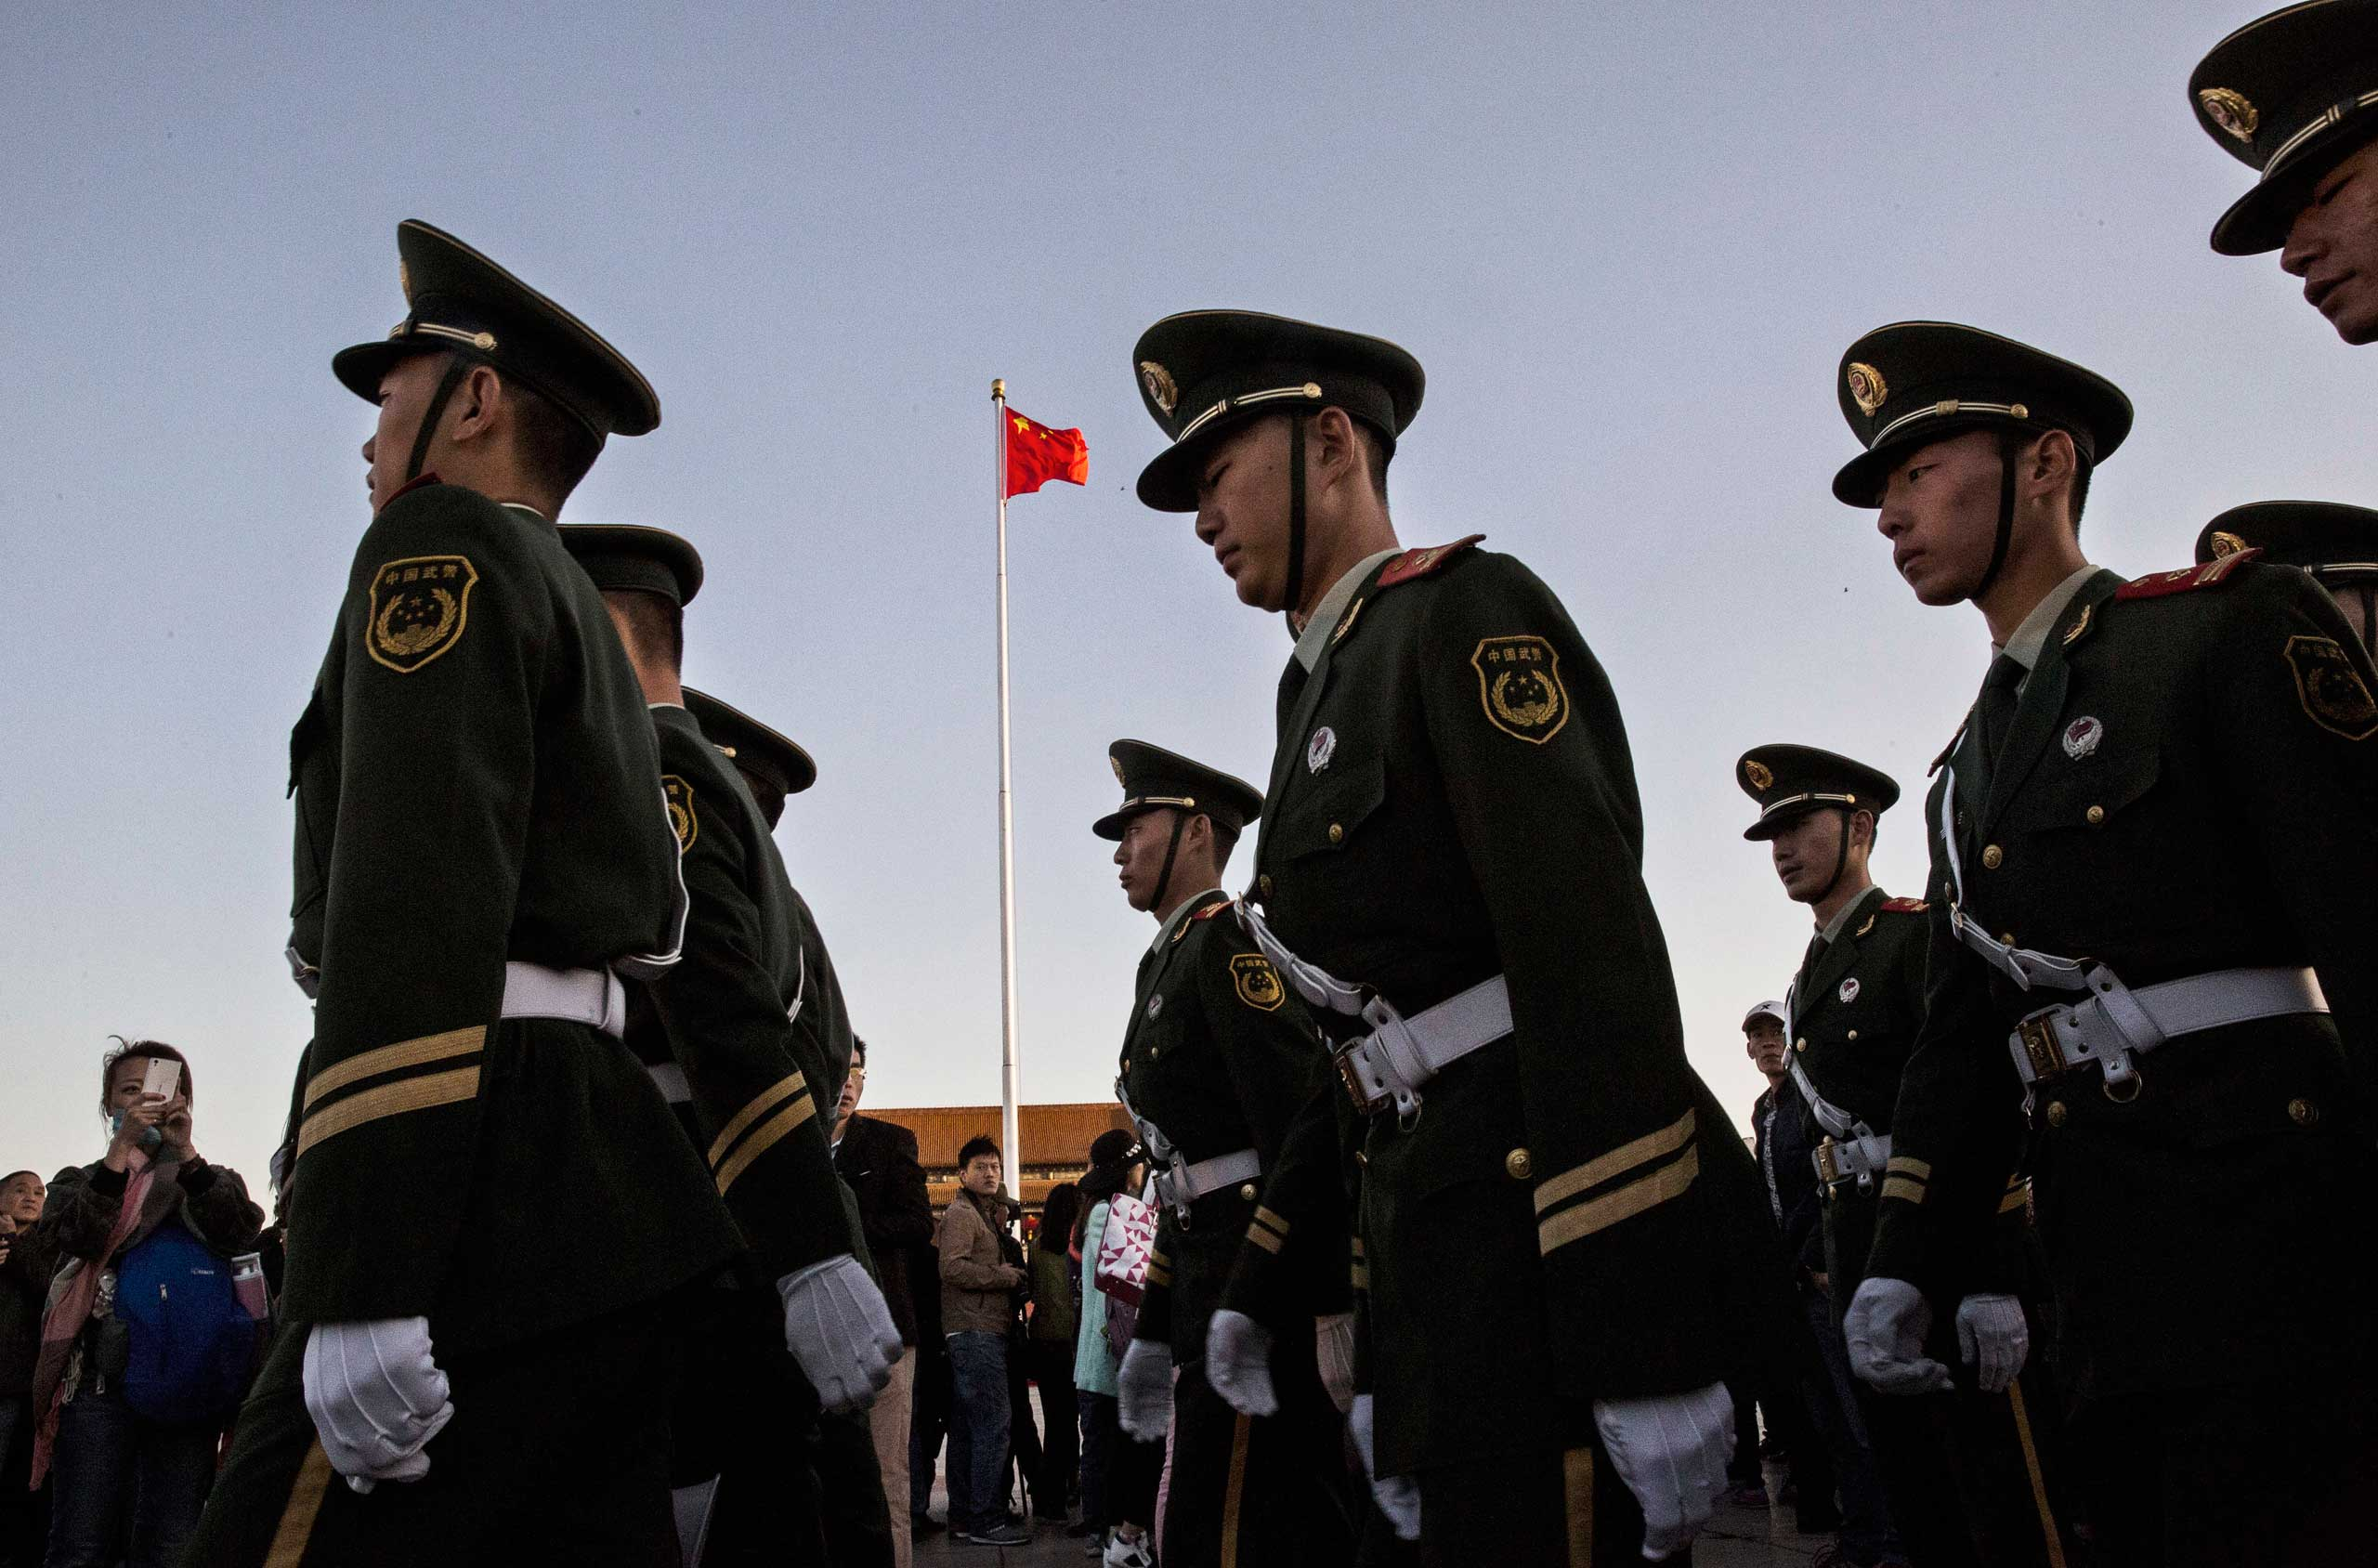 Paramilitary police officers march following the official flag raising ceremony at Tiananmen Square to mark the 66th National Day in Beijing, on Oct. 1, 2015.